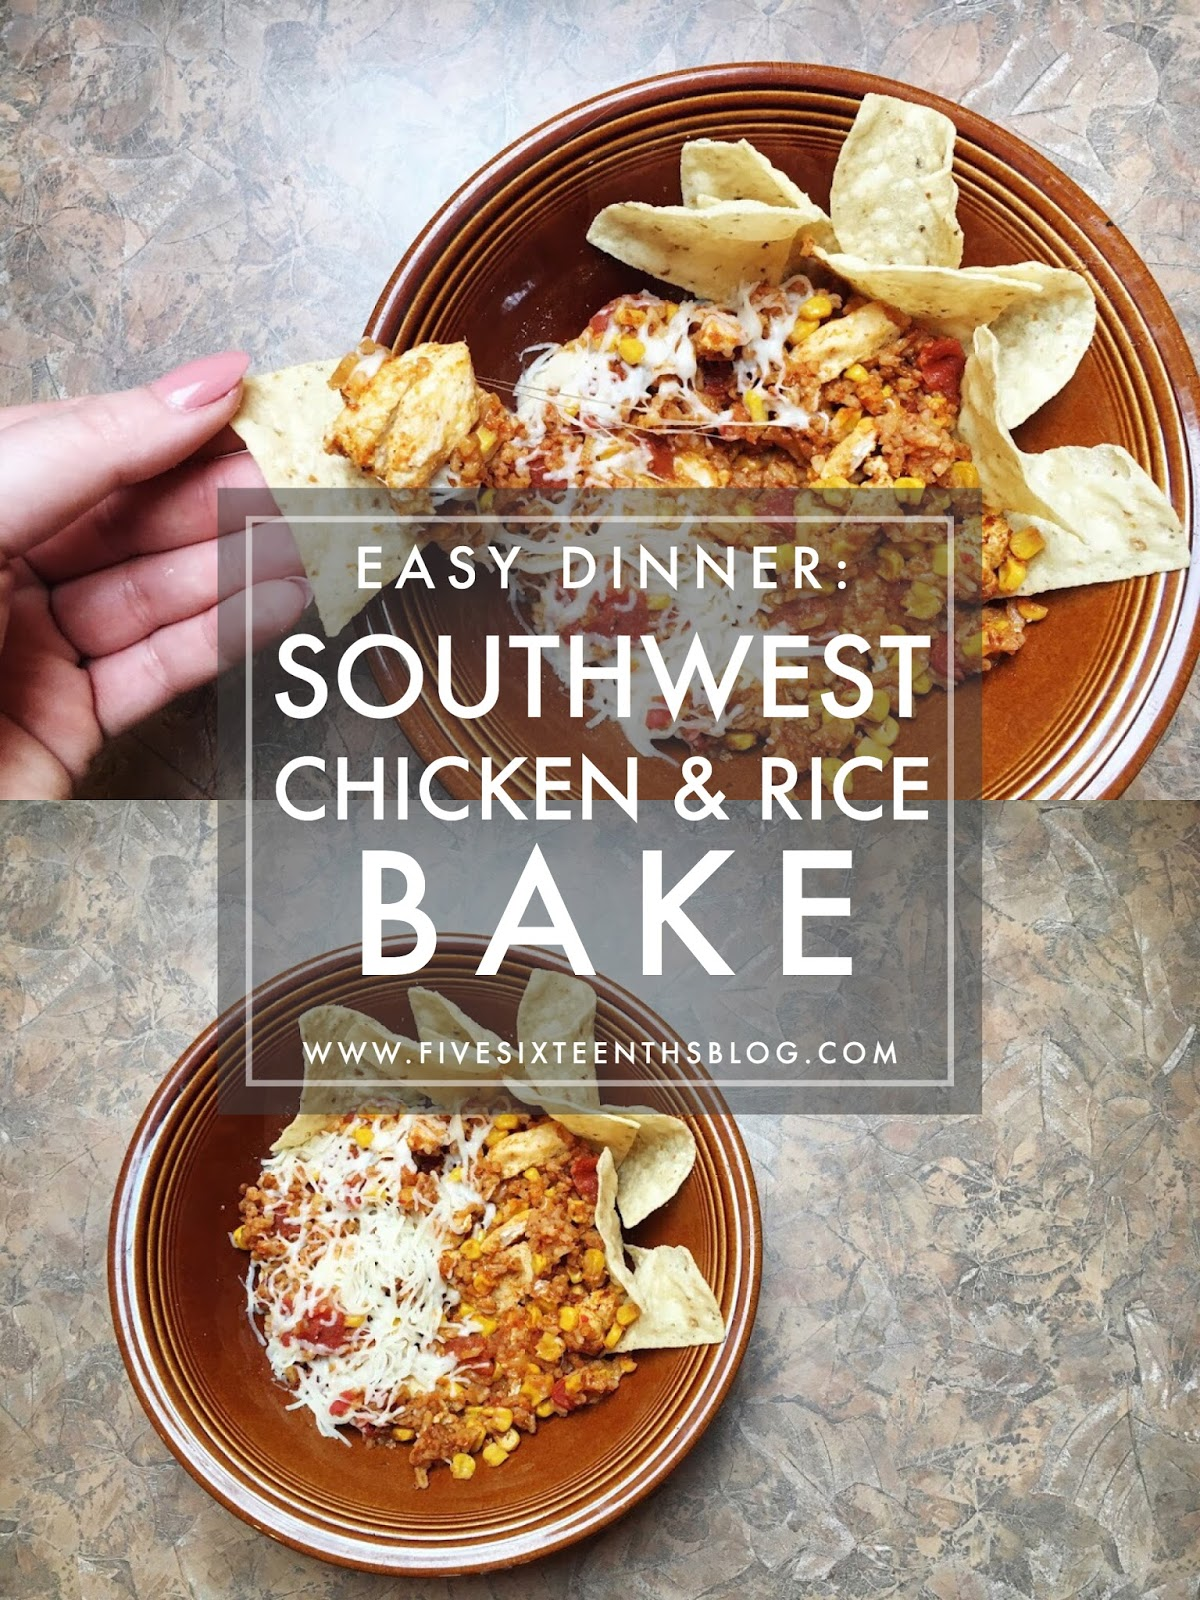 Southwest Chicken and Rice